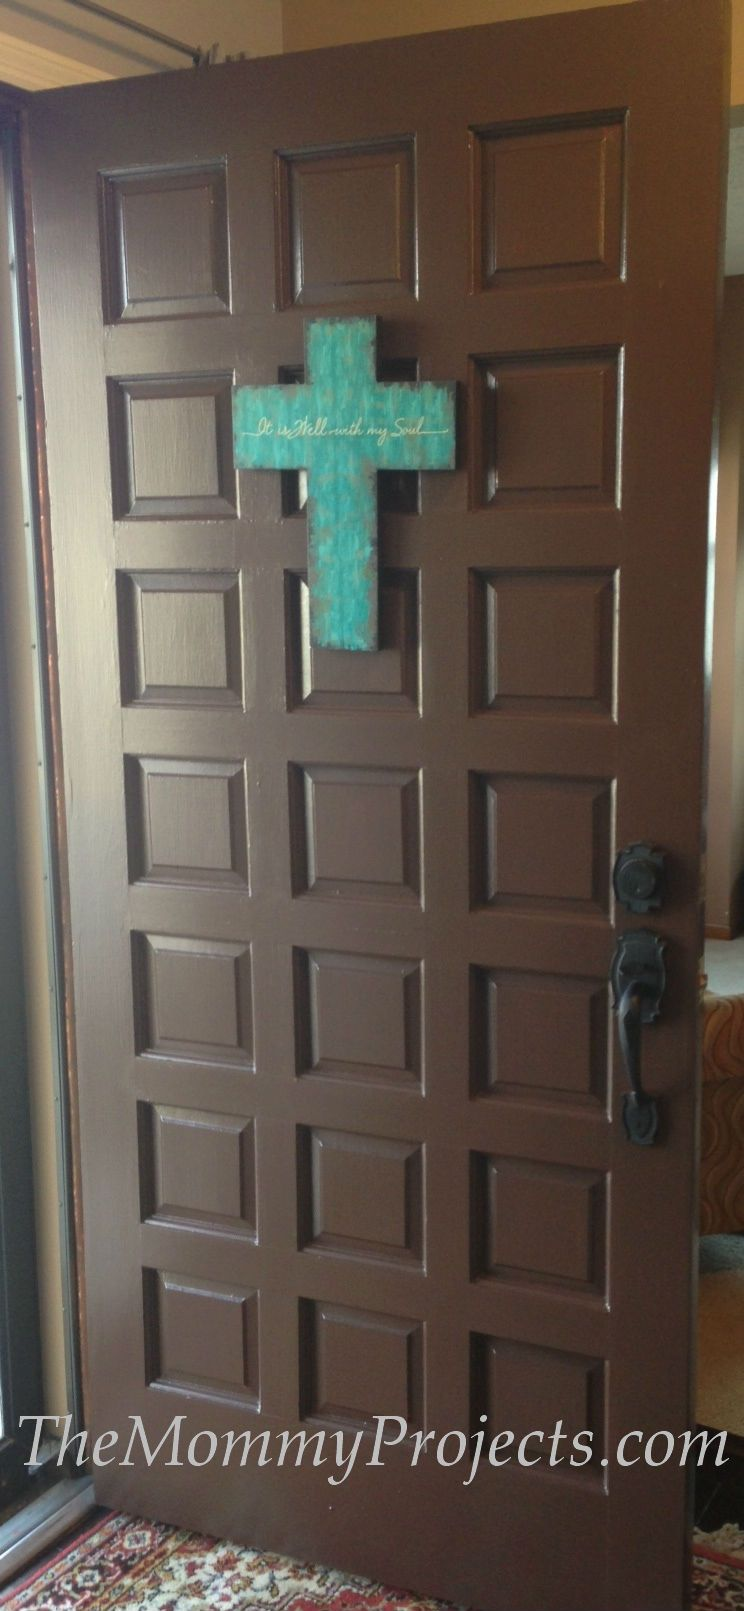 Updated Front Door From Red To Turkish Coffee By Sherwin Williams Themommyprojects